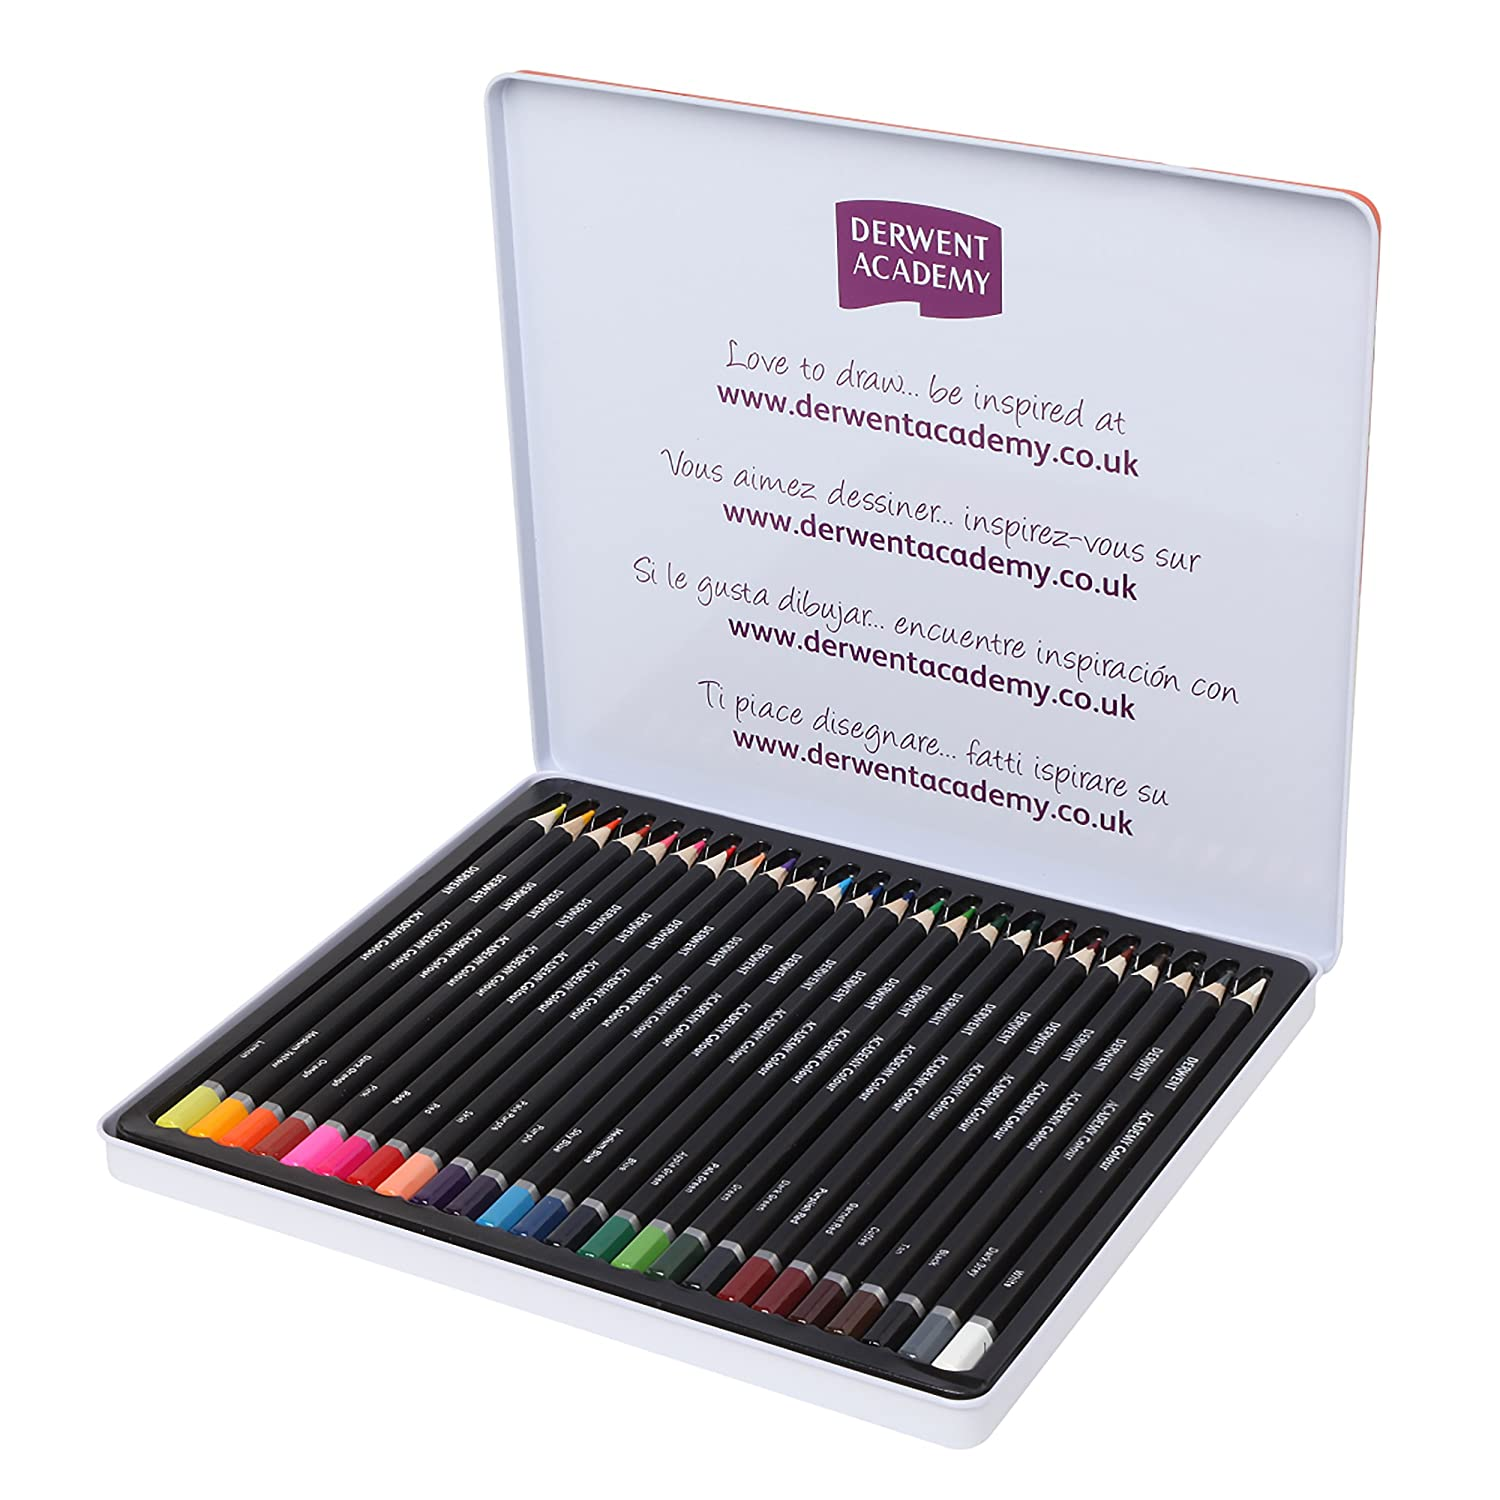 Derwent 2301938 Academy Colouring Pencils Tin   Set Of 24   Multicolour by Amazon